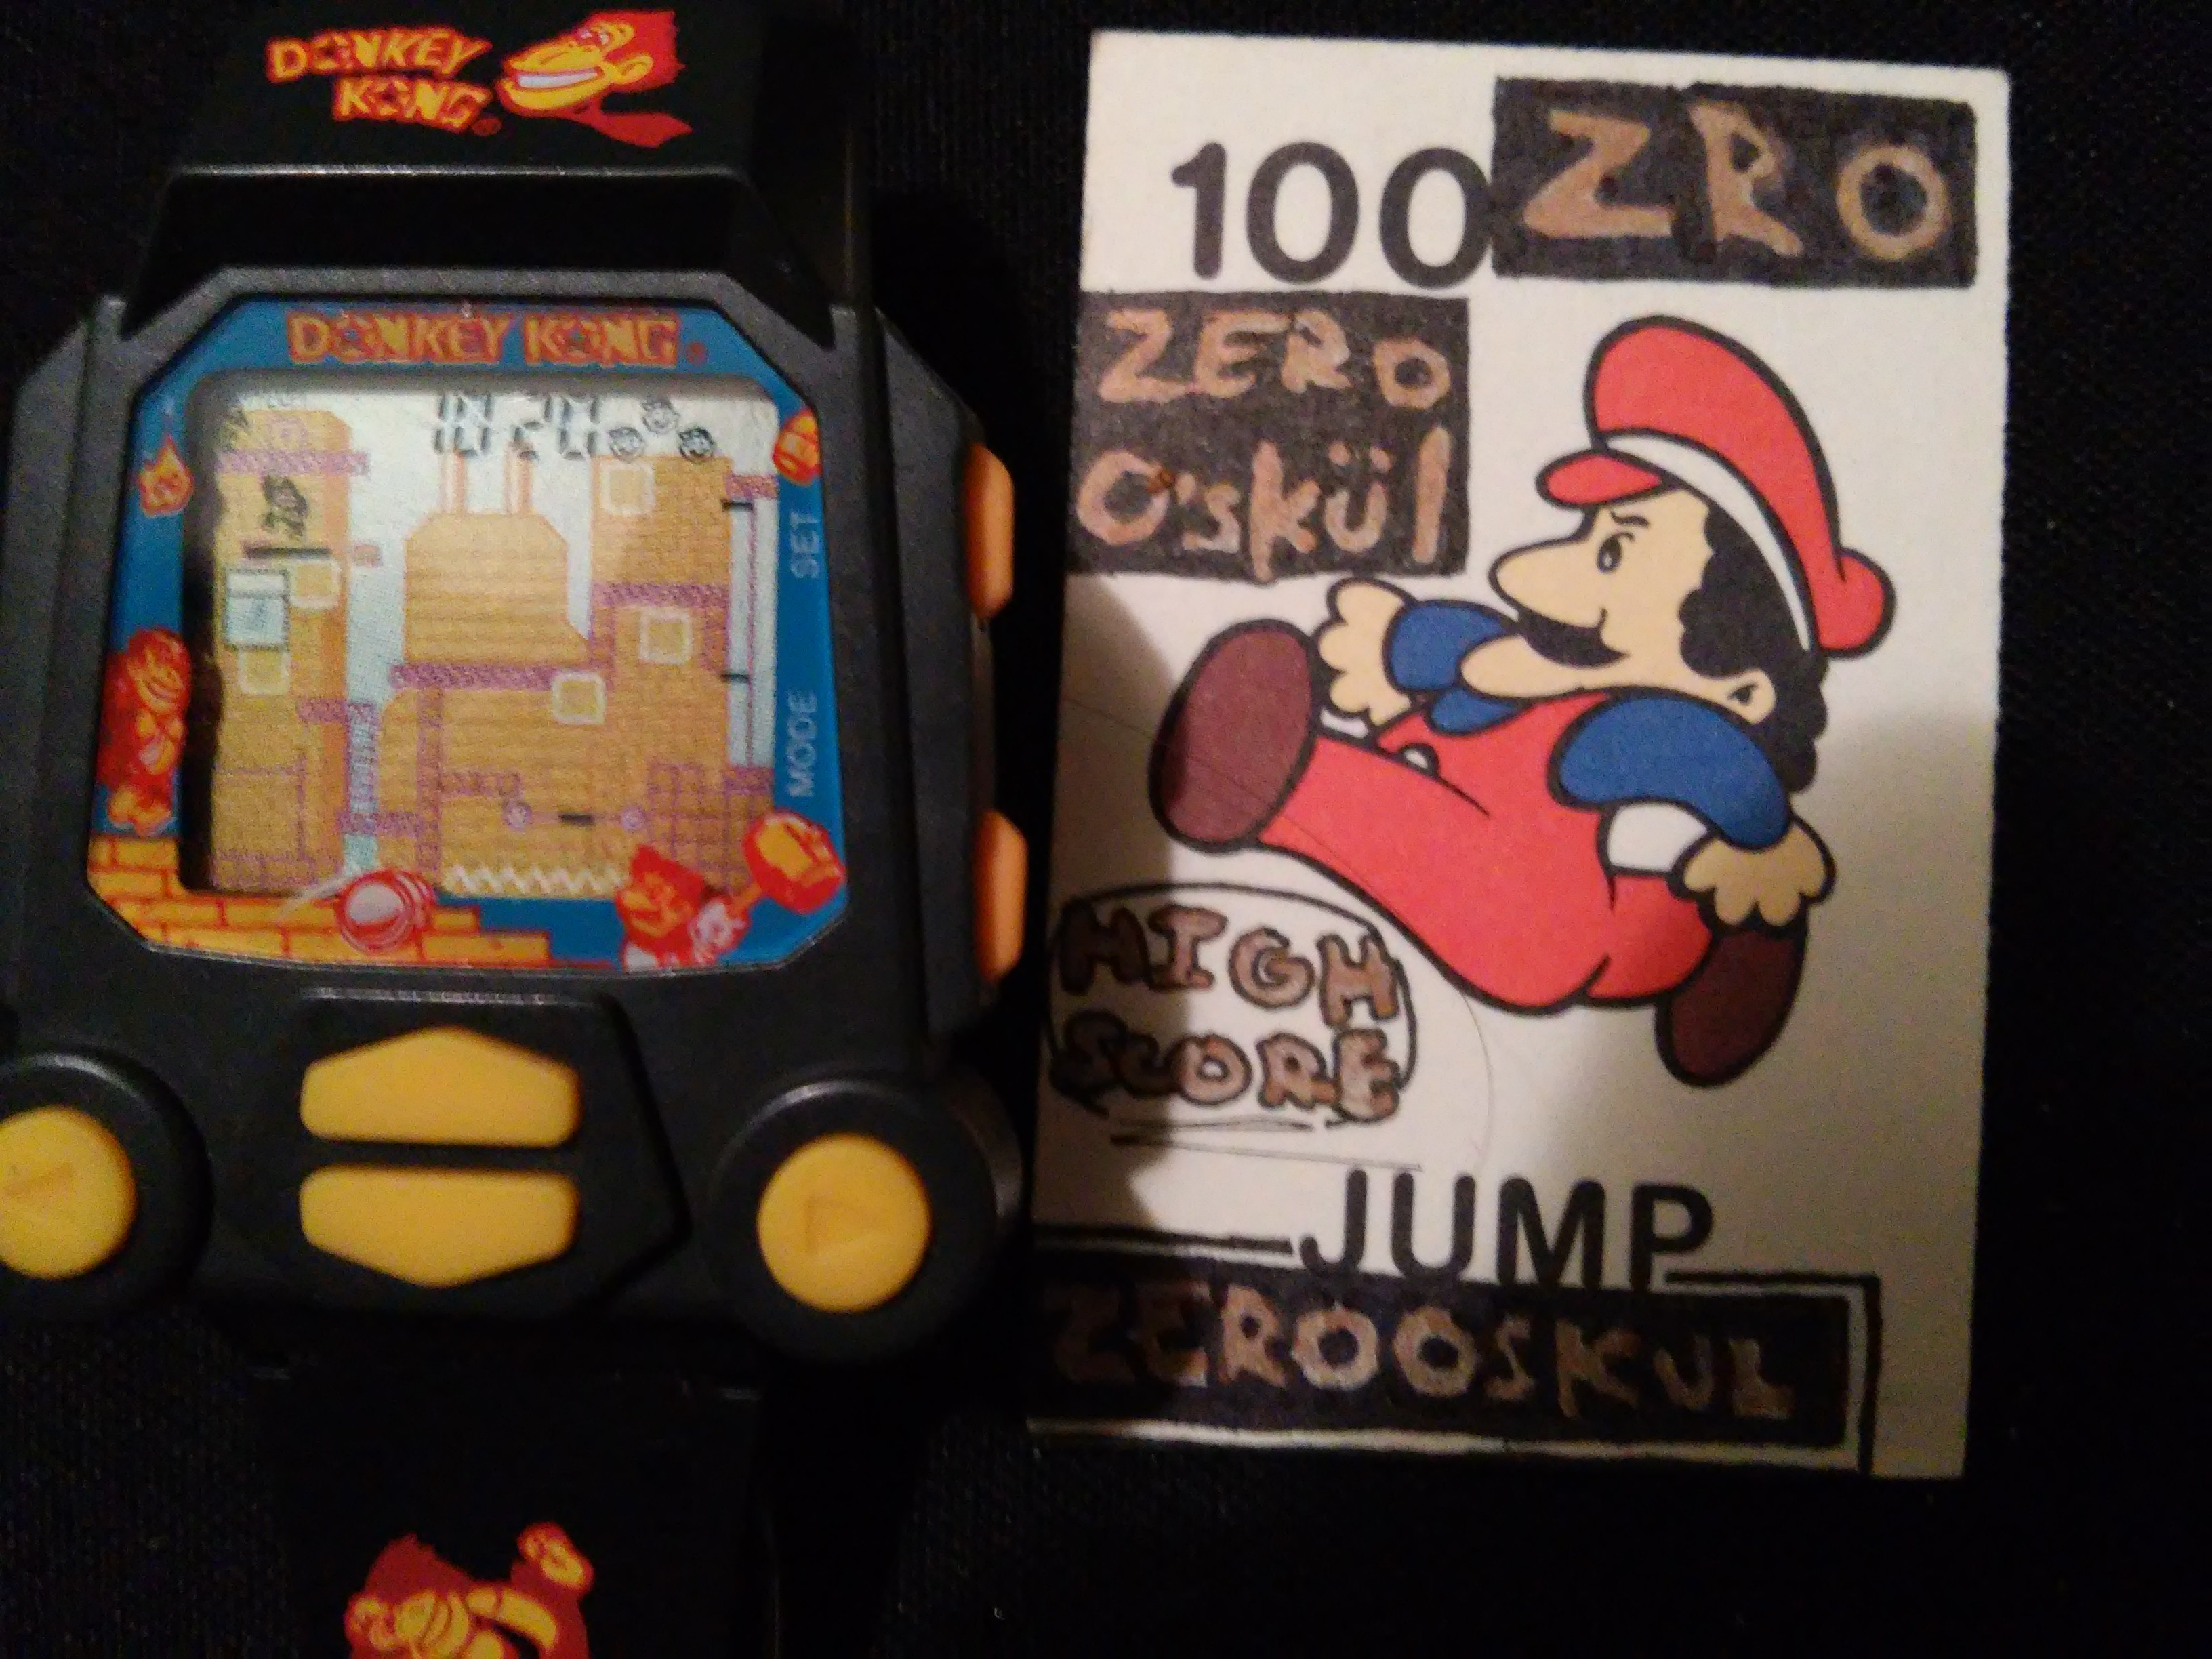 Nelsonic Donkey Kong Game Watch 1,020 points